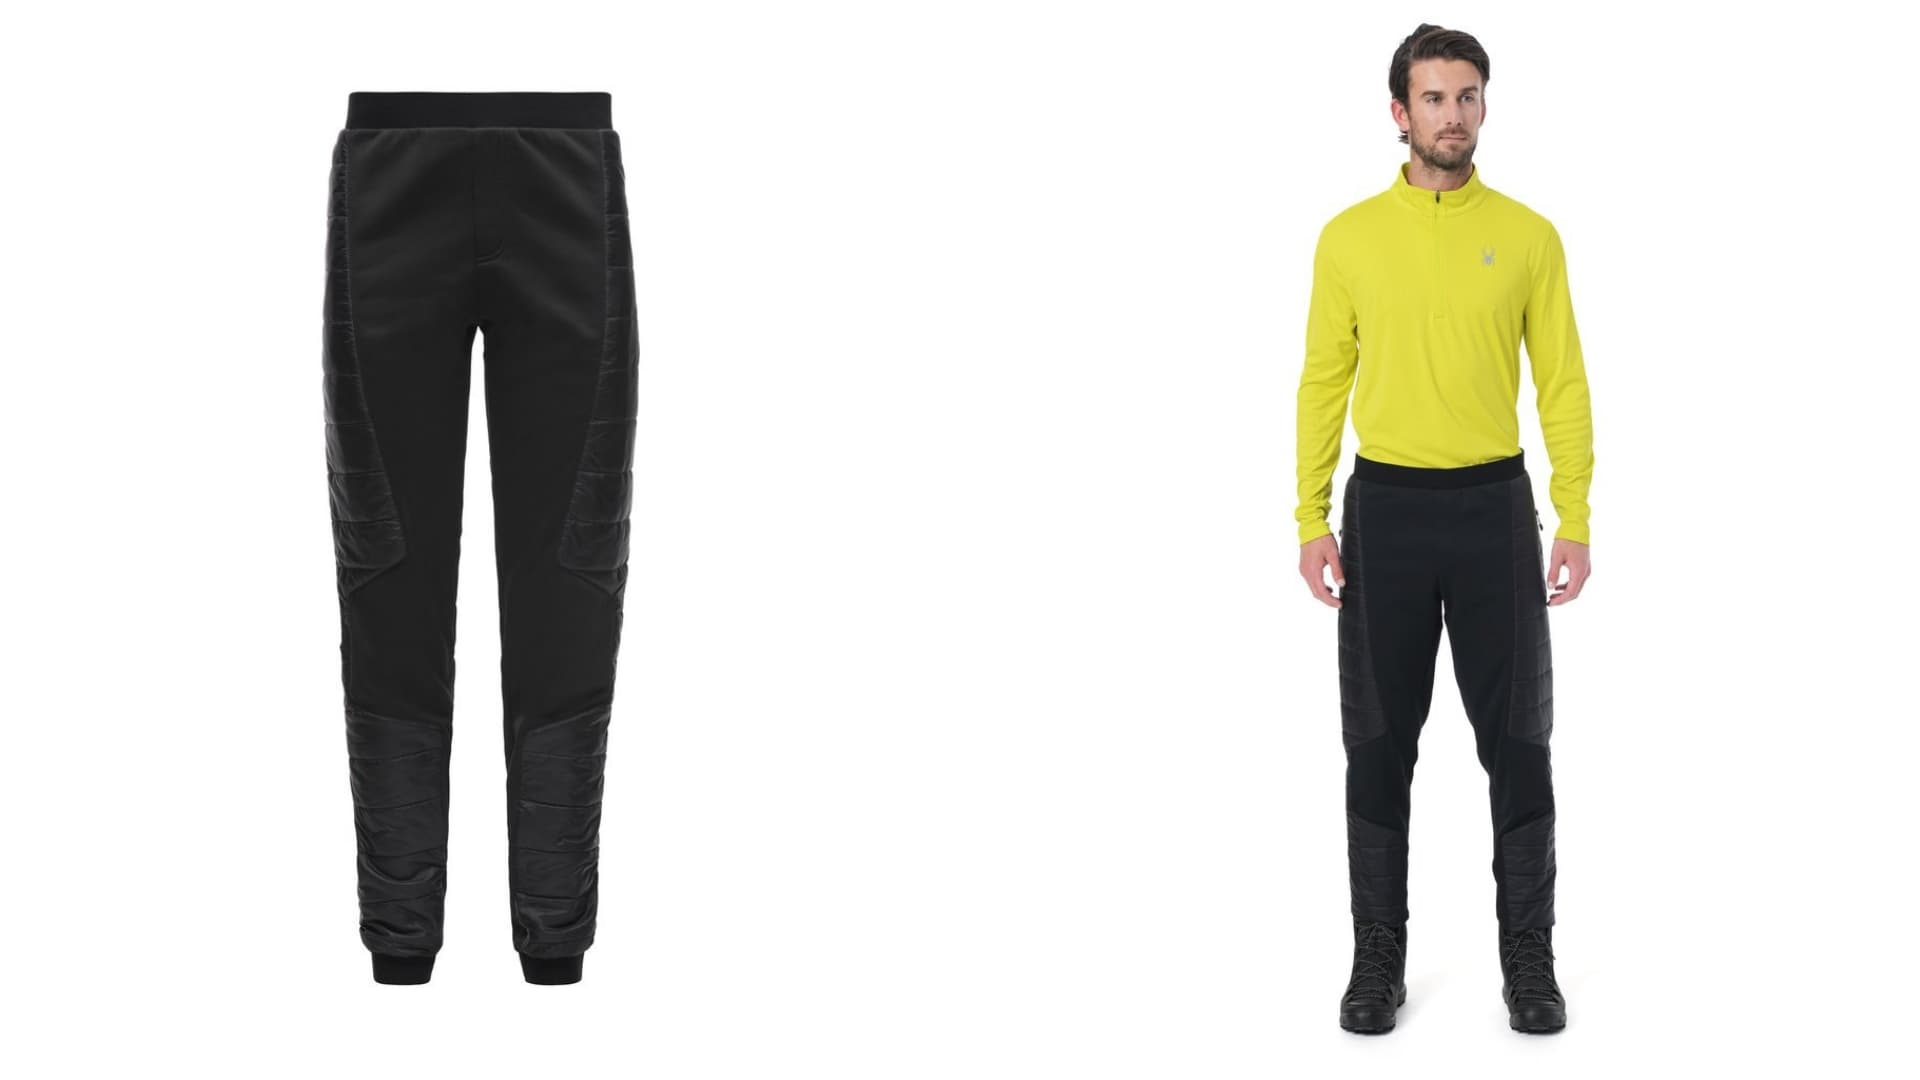 (left) black glissade pants (right) man in black glissade pants wearing bright yellow performance shirt